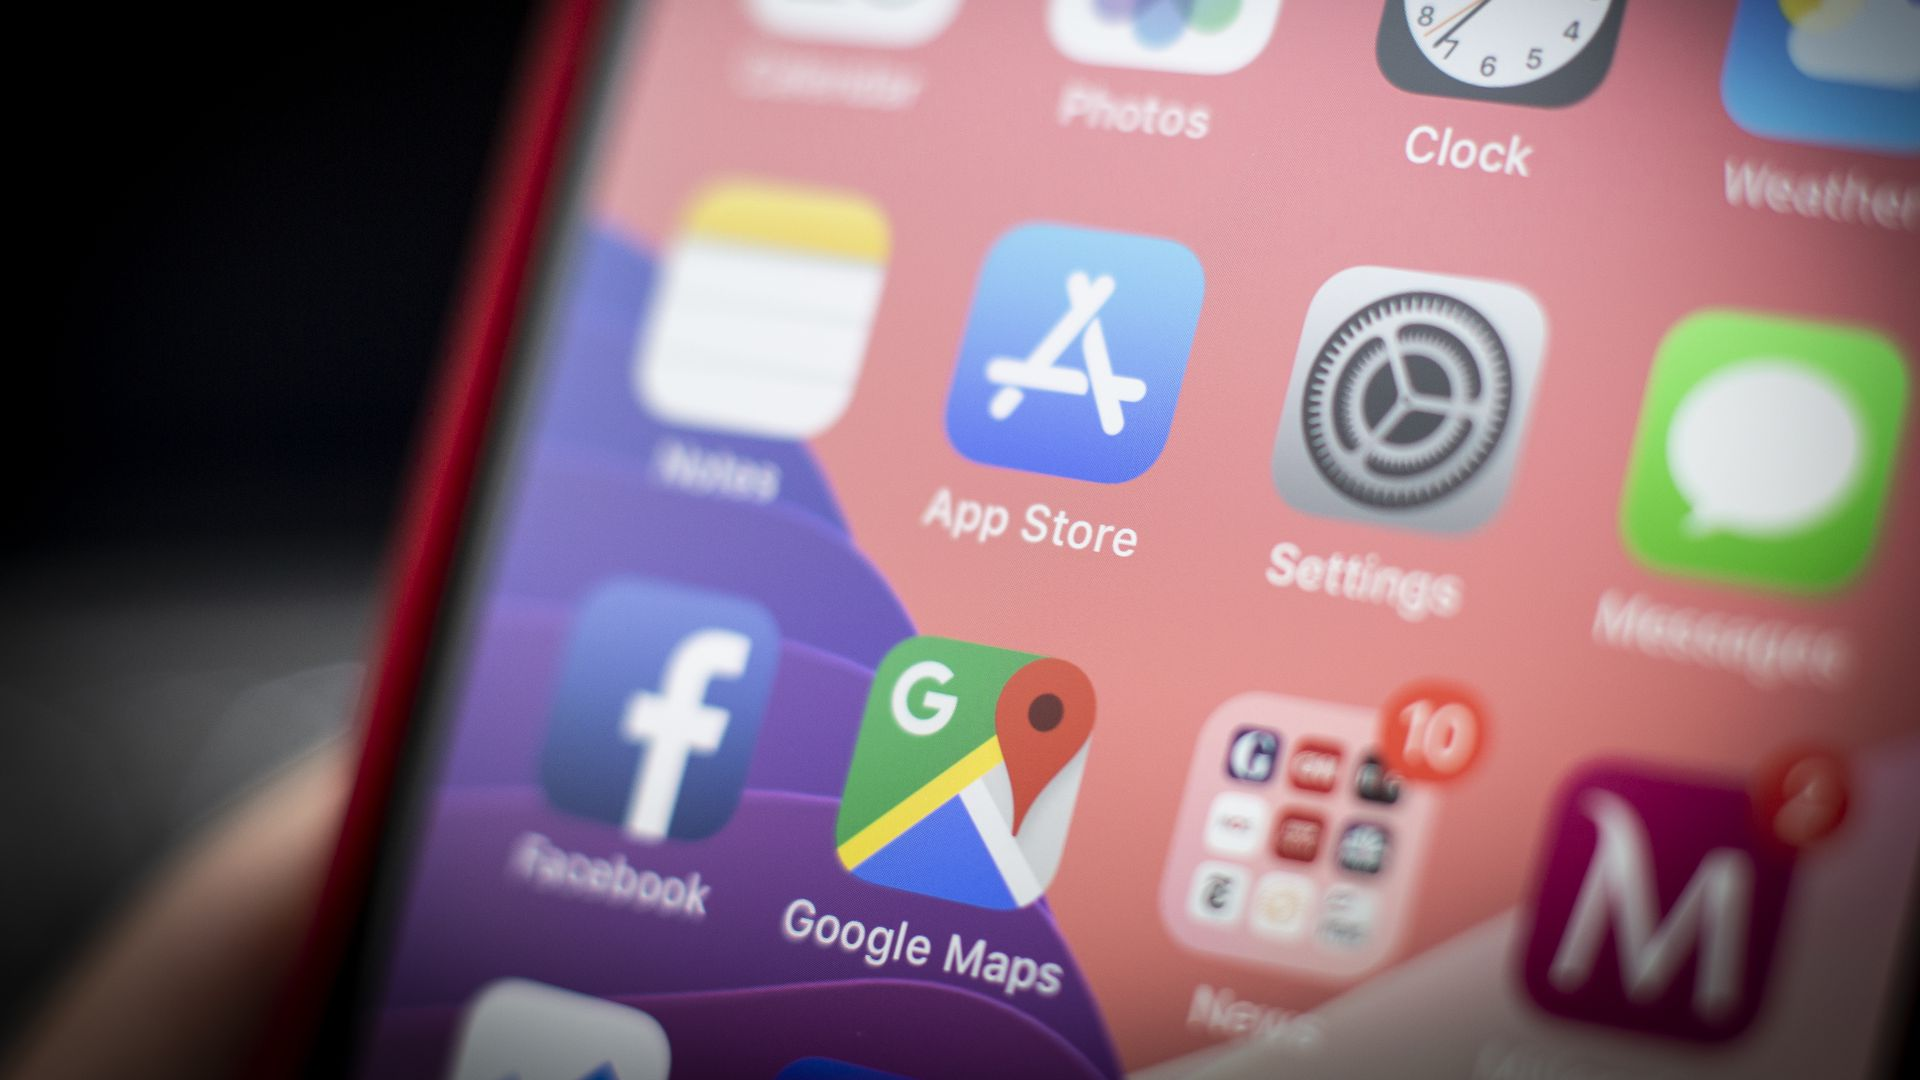 A Google Maps icon seen on an iPhone